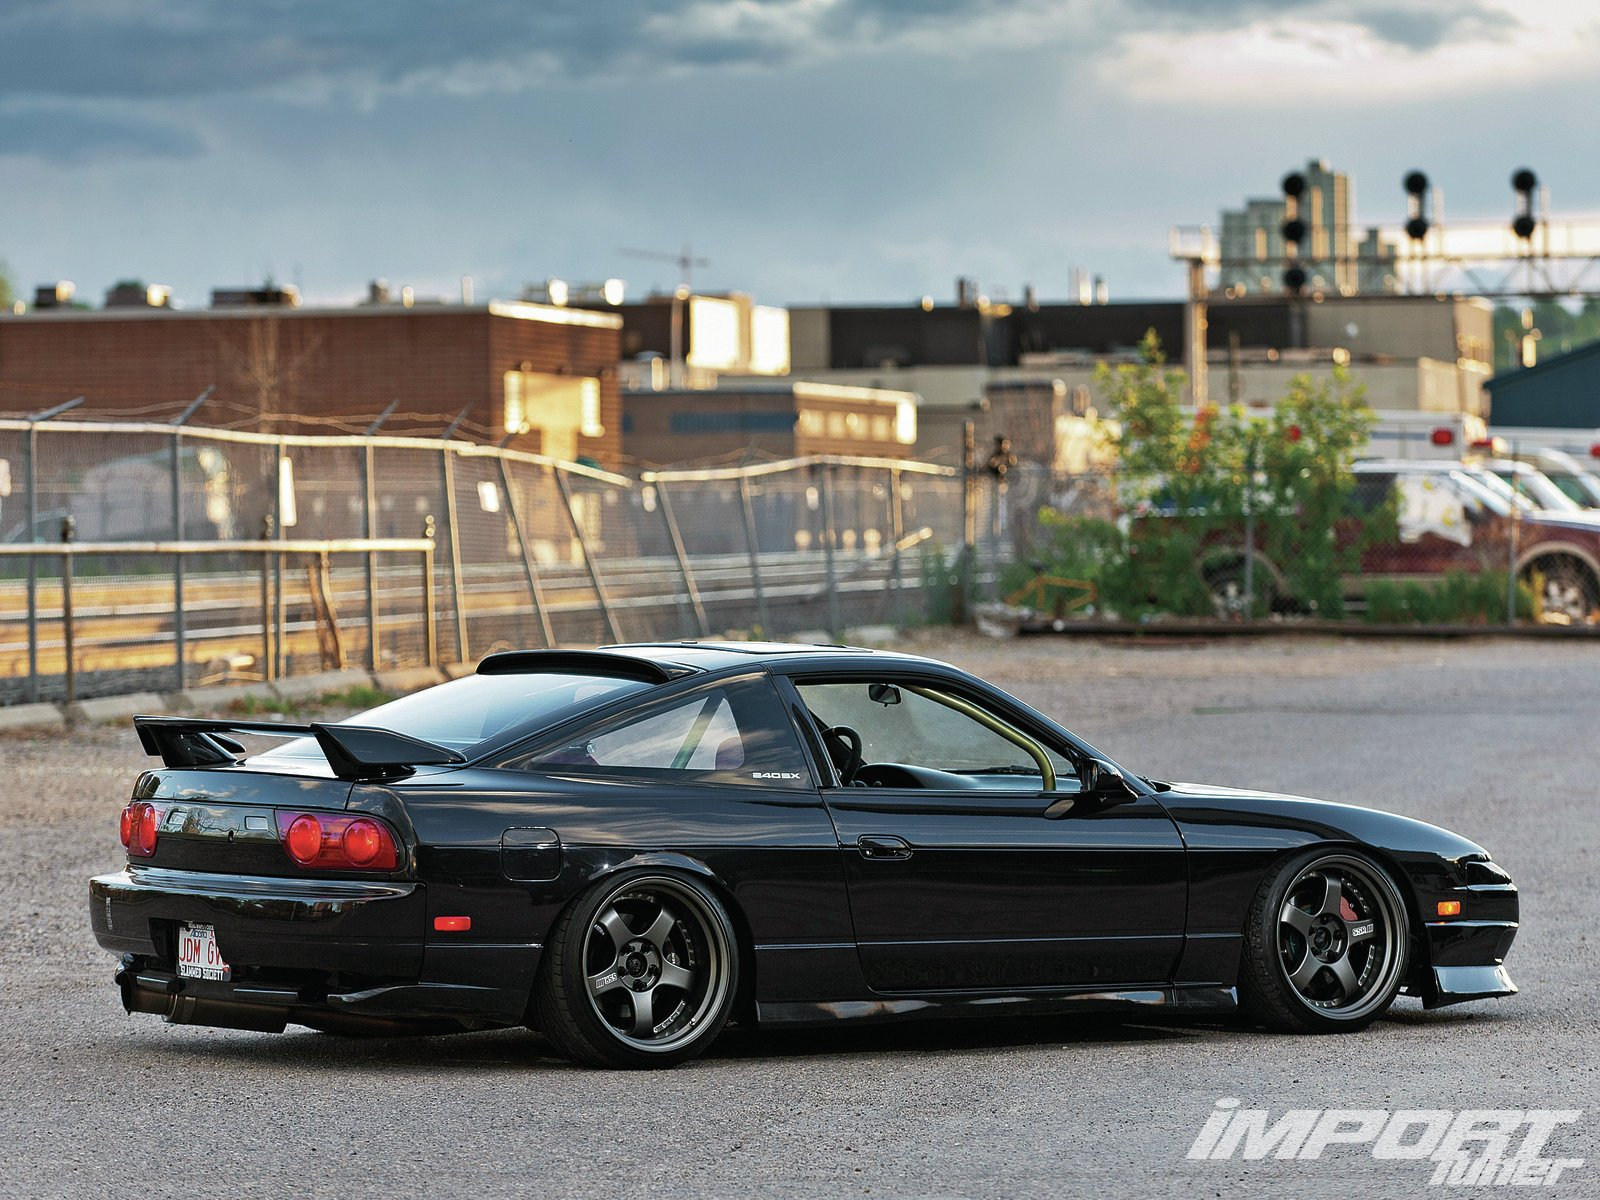 Nissan 240sx Coupe Japan Tuning Cars Wallpaper Nissan 240sx S13 Jdm 1600x1200 Download Hd Wallpaper Wallpapertip